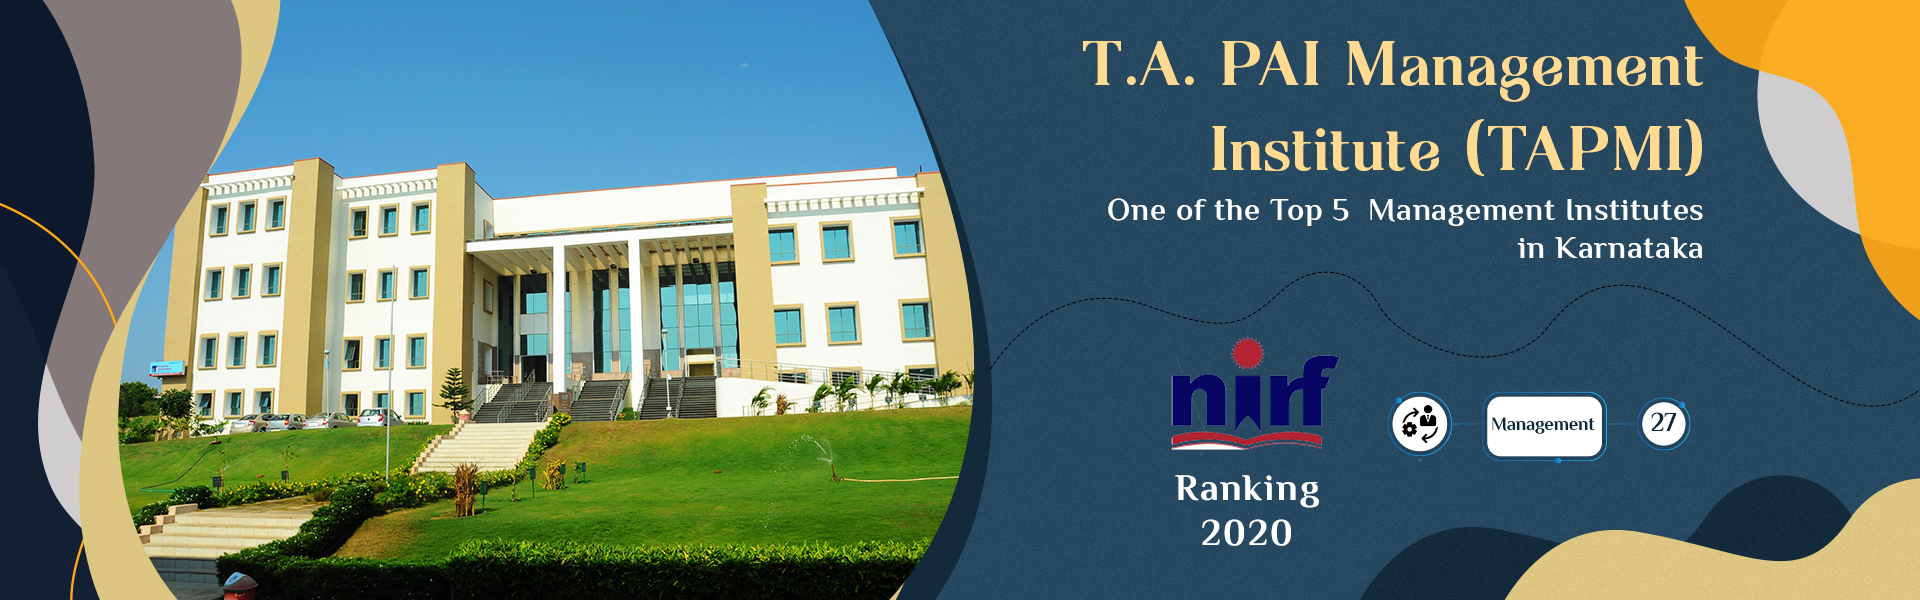 T.A. PAI Management Institute (TAPMI)